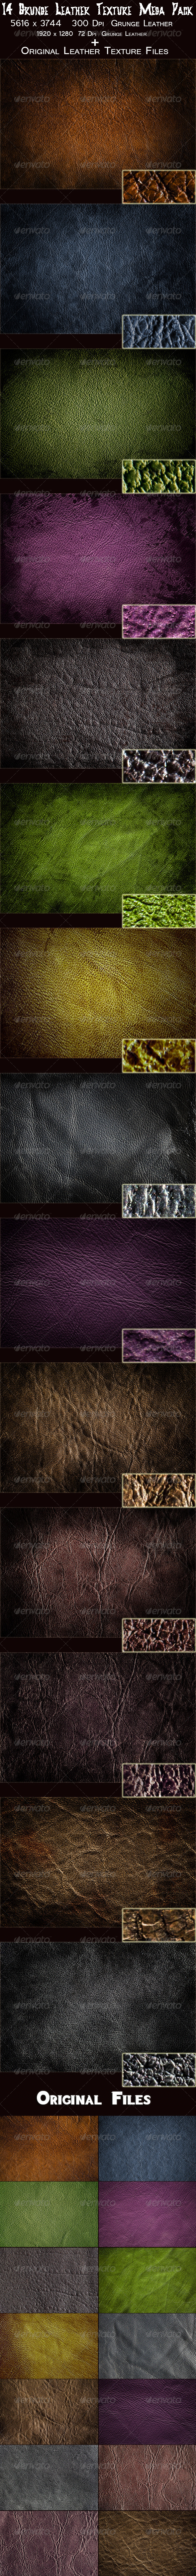 14 Grunge Leather Texture Mega Pack - Fabric Textures